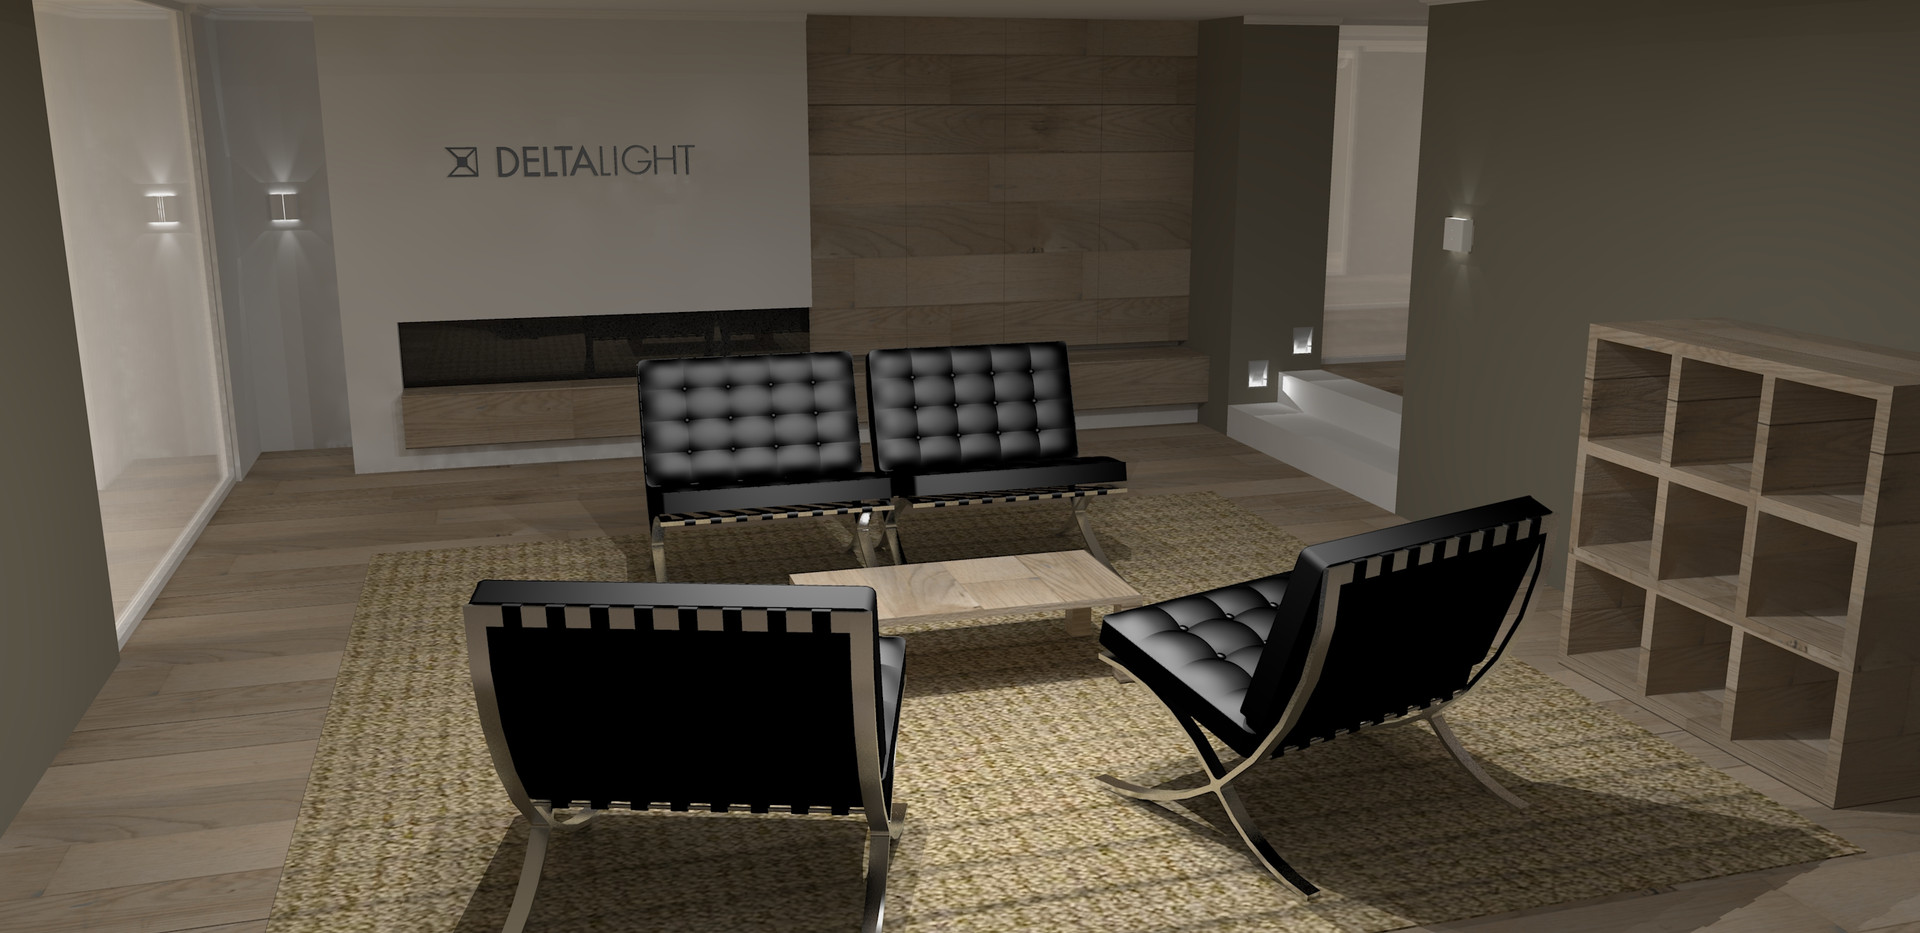 DELTALIGHT_RENDER_2.jpg